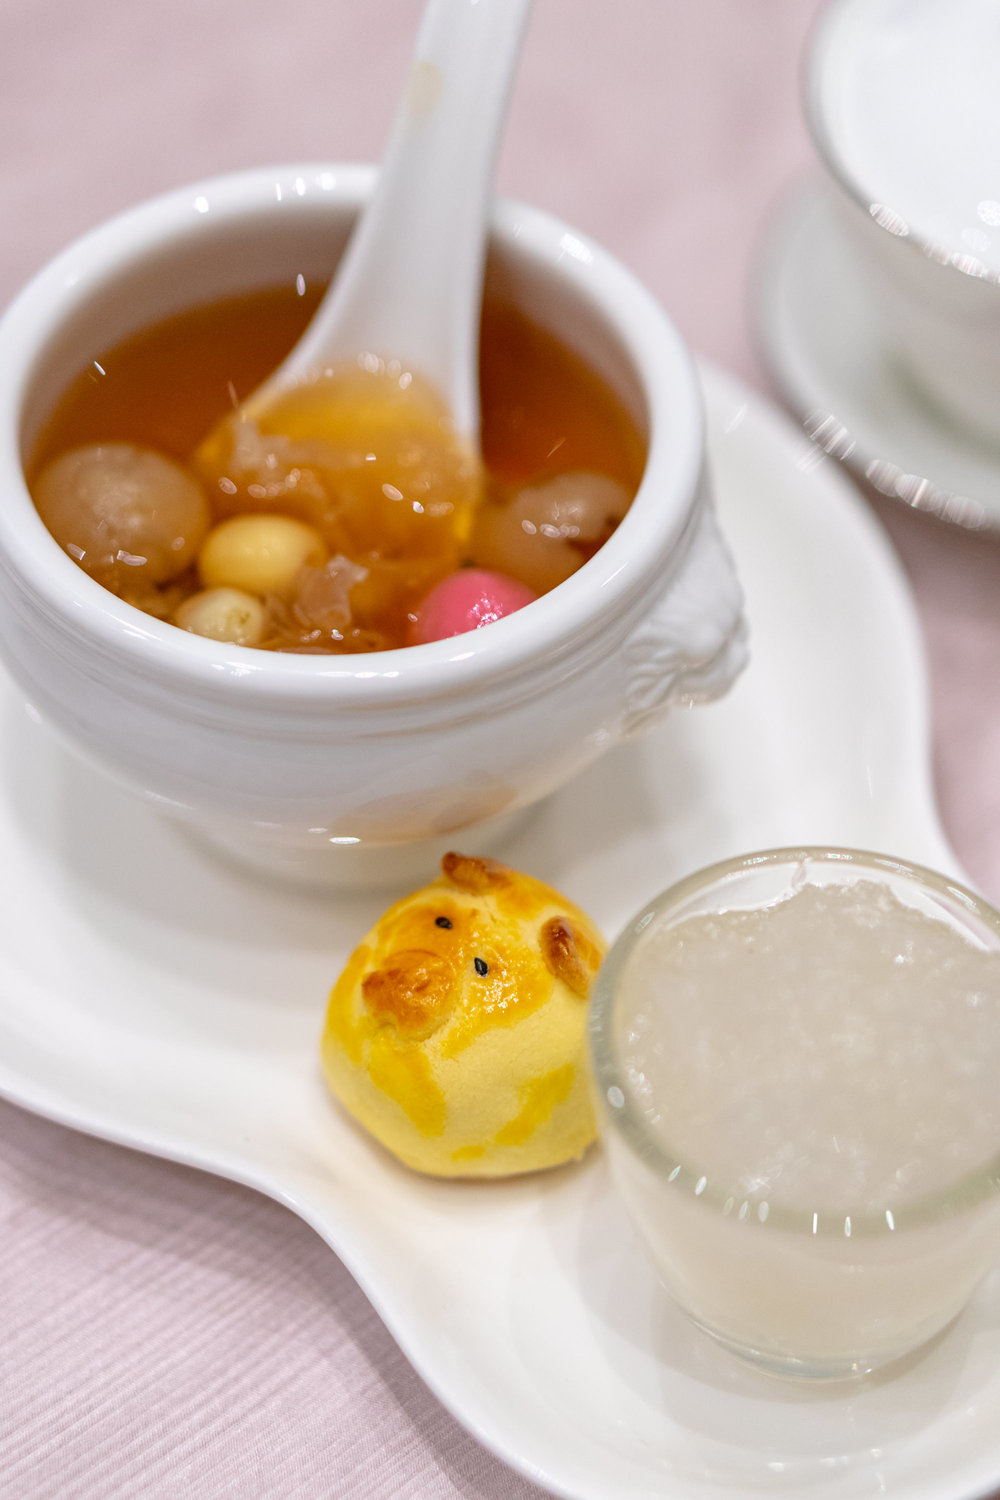 "Baked Golden Pineapple Piglets 金猪黄梨酥, and Hot Eight Treasures Soup with ""Tang Yuan"" and Bird's Nest 十方八宝加官进爵 – 八宝甜汤圆配燕窝"